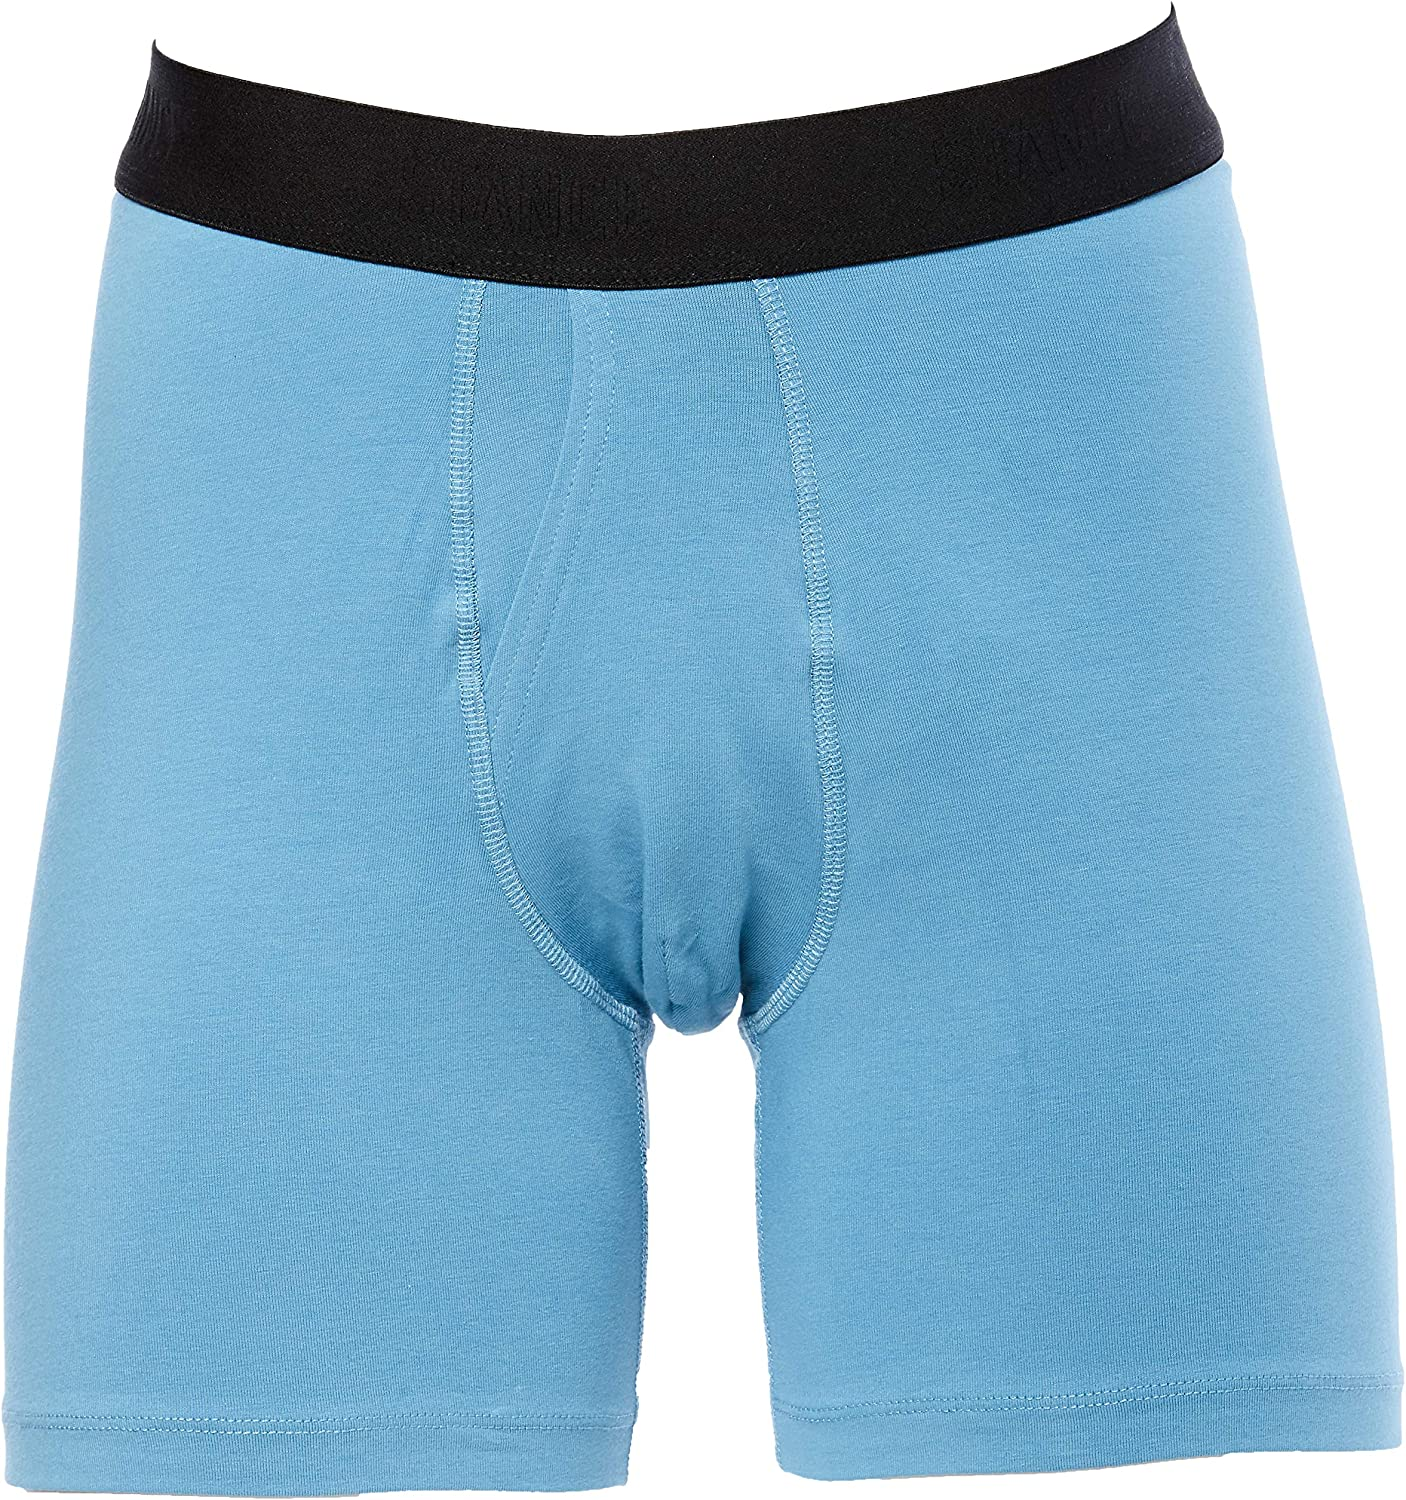 Stance Canyon Wholester Boxer Brief